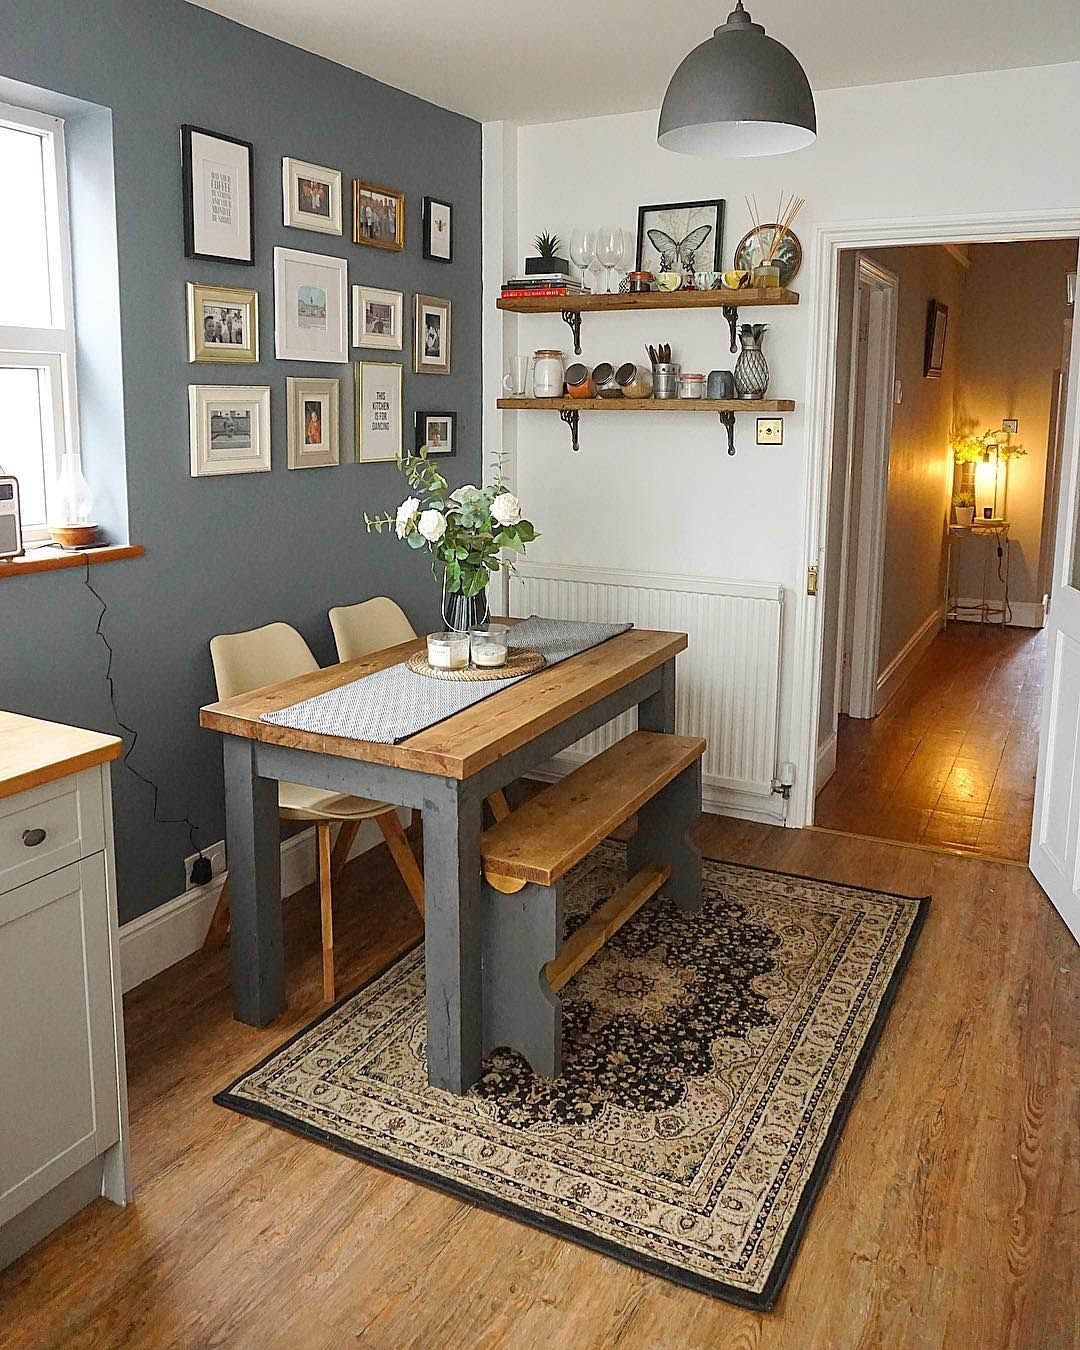 8 Small Kitchen Table Ideas for Your Home - stylevane.com